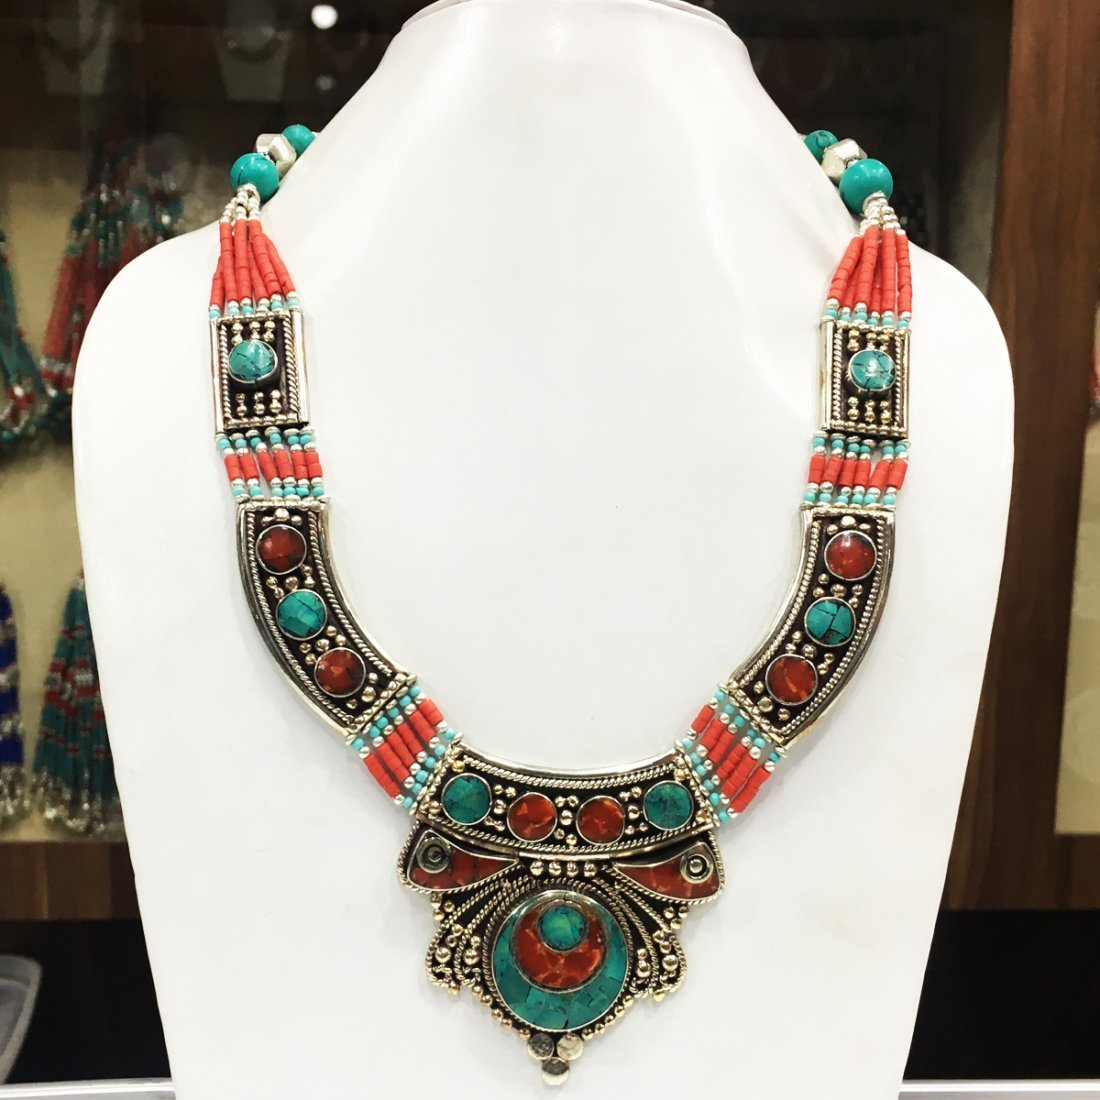 New Arrival - Beautiful Turquoise & coral Necklace